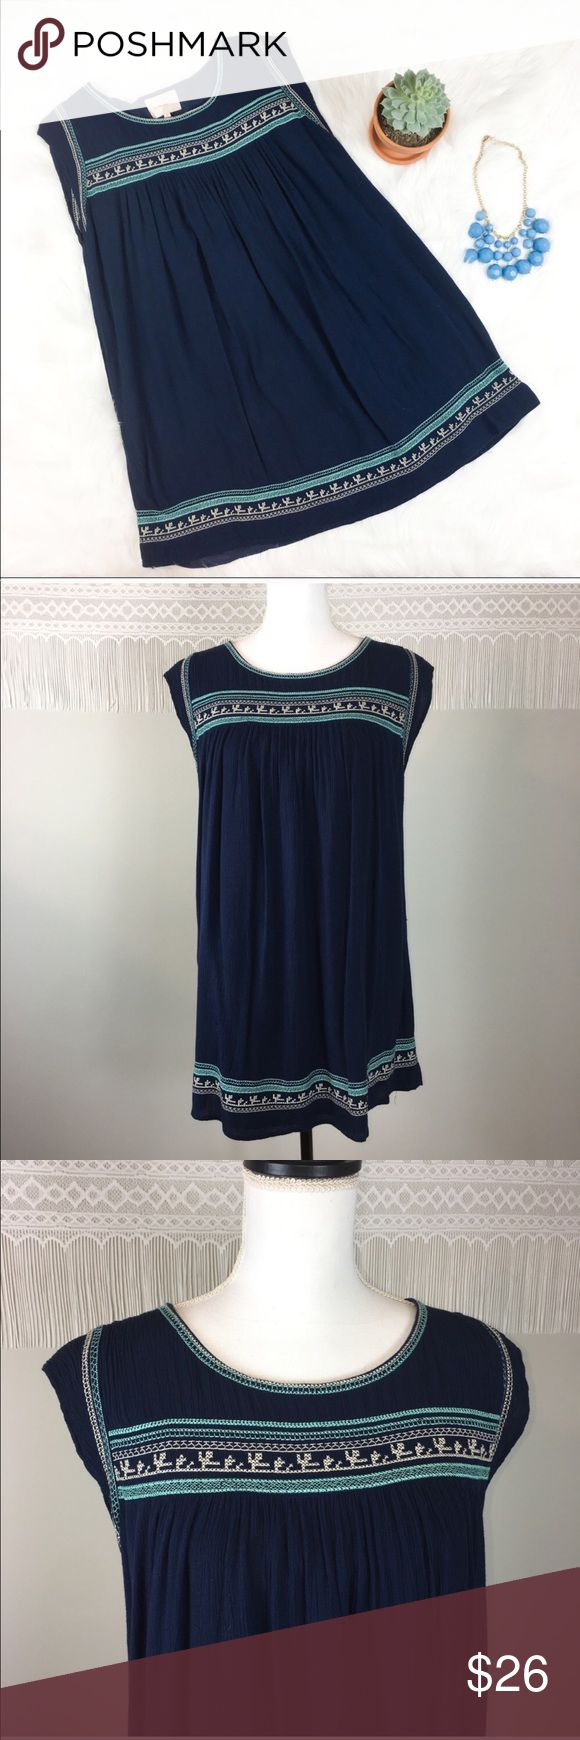 Under Skies Blue Embroidered Dress Under Skies blue and teal Embroidered dress. Can be worn as a tunic also. Size medium. Approximate measurements flat laid are 31' long and 18' bust. GUC with basic wear. ❌No trades ❌ Modeling ❌No PayPal or off Posh transactions ❤️ I 💕Bundles ❤️Reasonable Offers PLEASE ❤️ Under Skies Dresses Mini